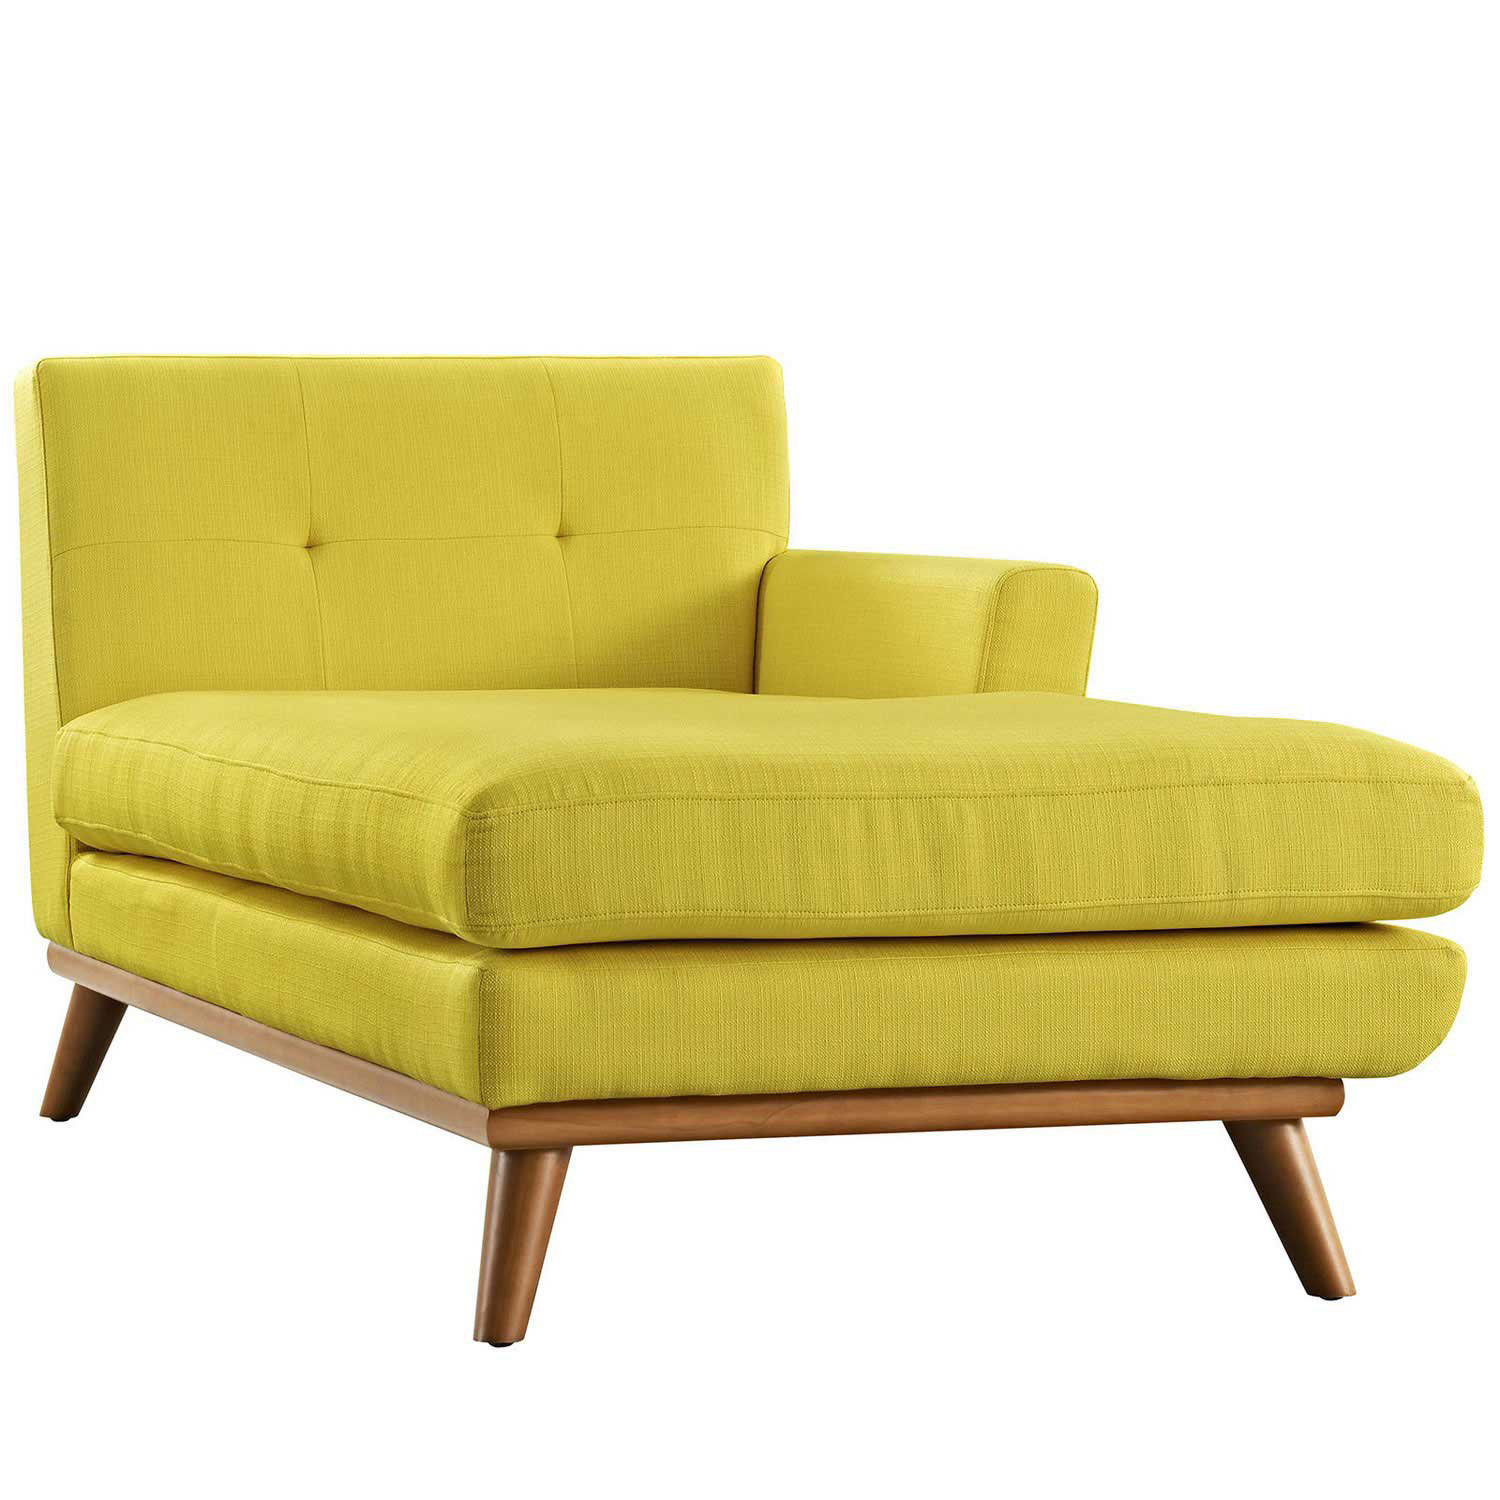 Modway engage right arm chaise sunny mw eei 1794 sun at for Chaise wooden arms